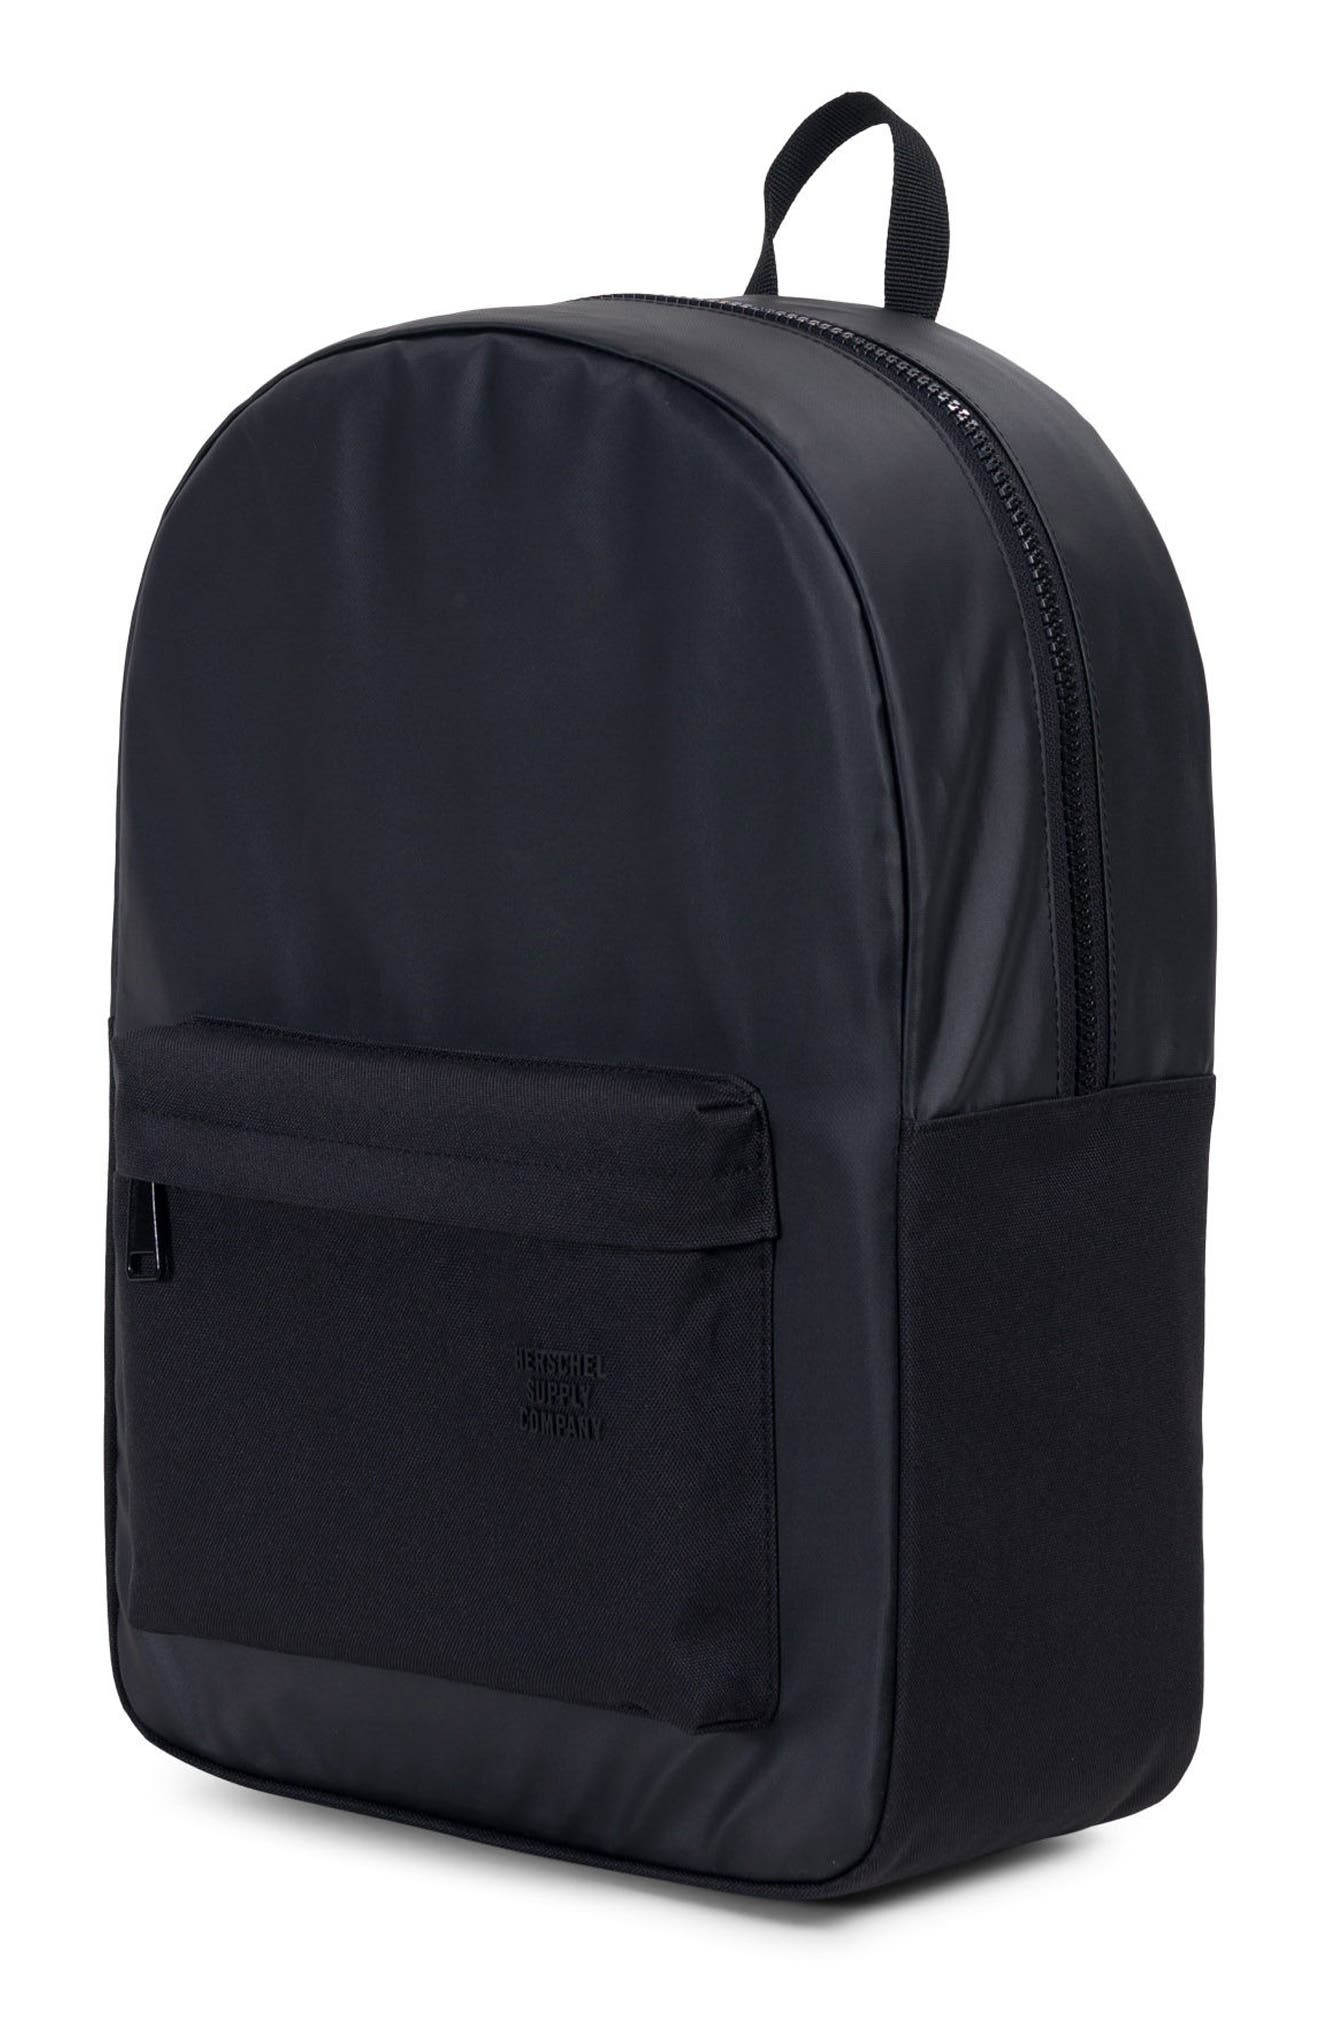 Winlaw Polycoat Studio Backpack,                             Alternate thumbnail 2, color,                             001